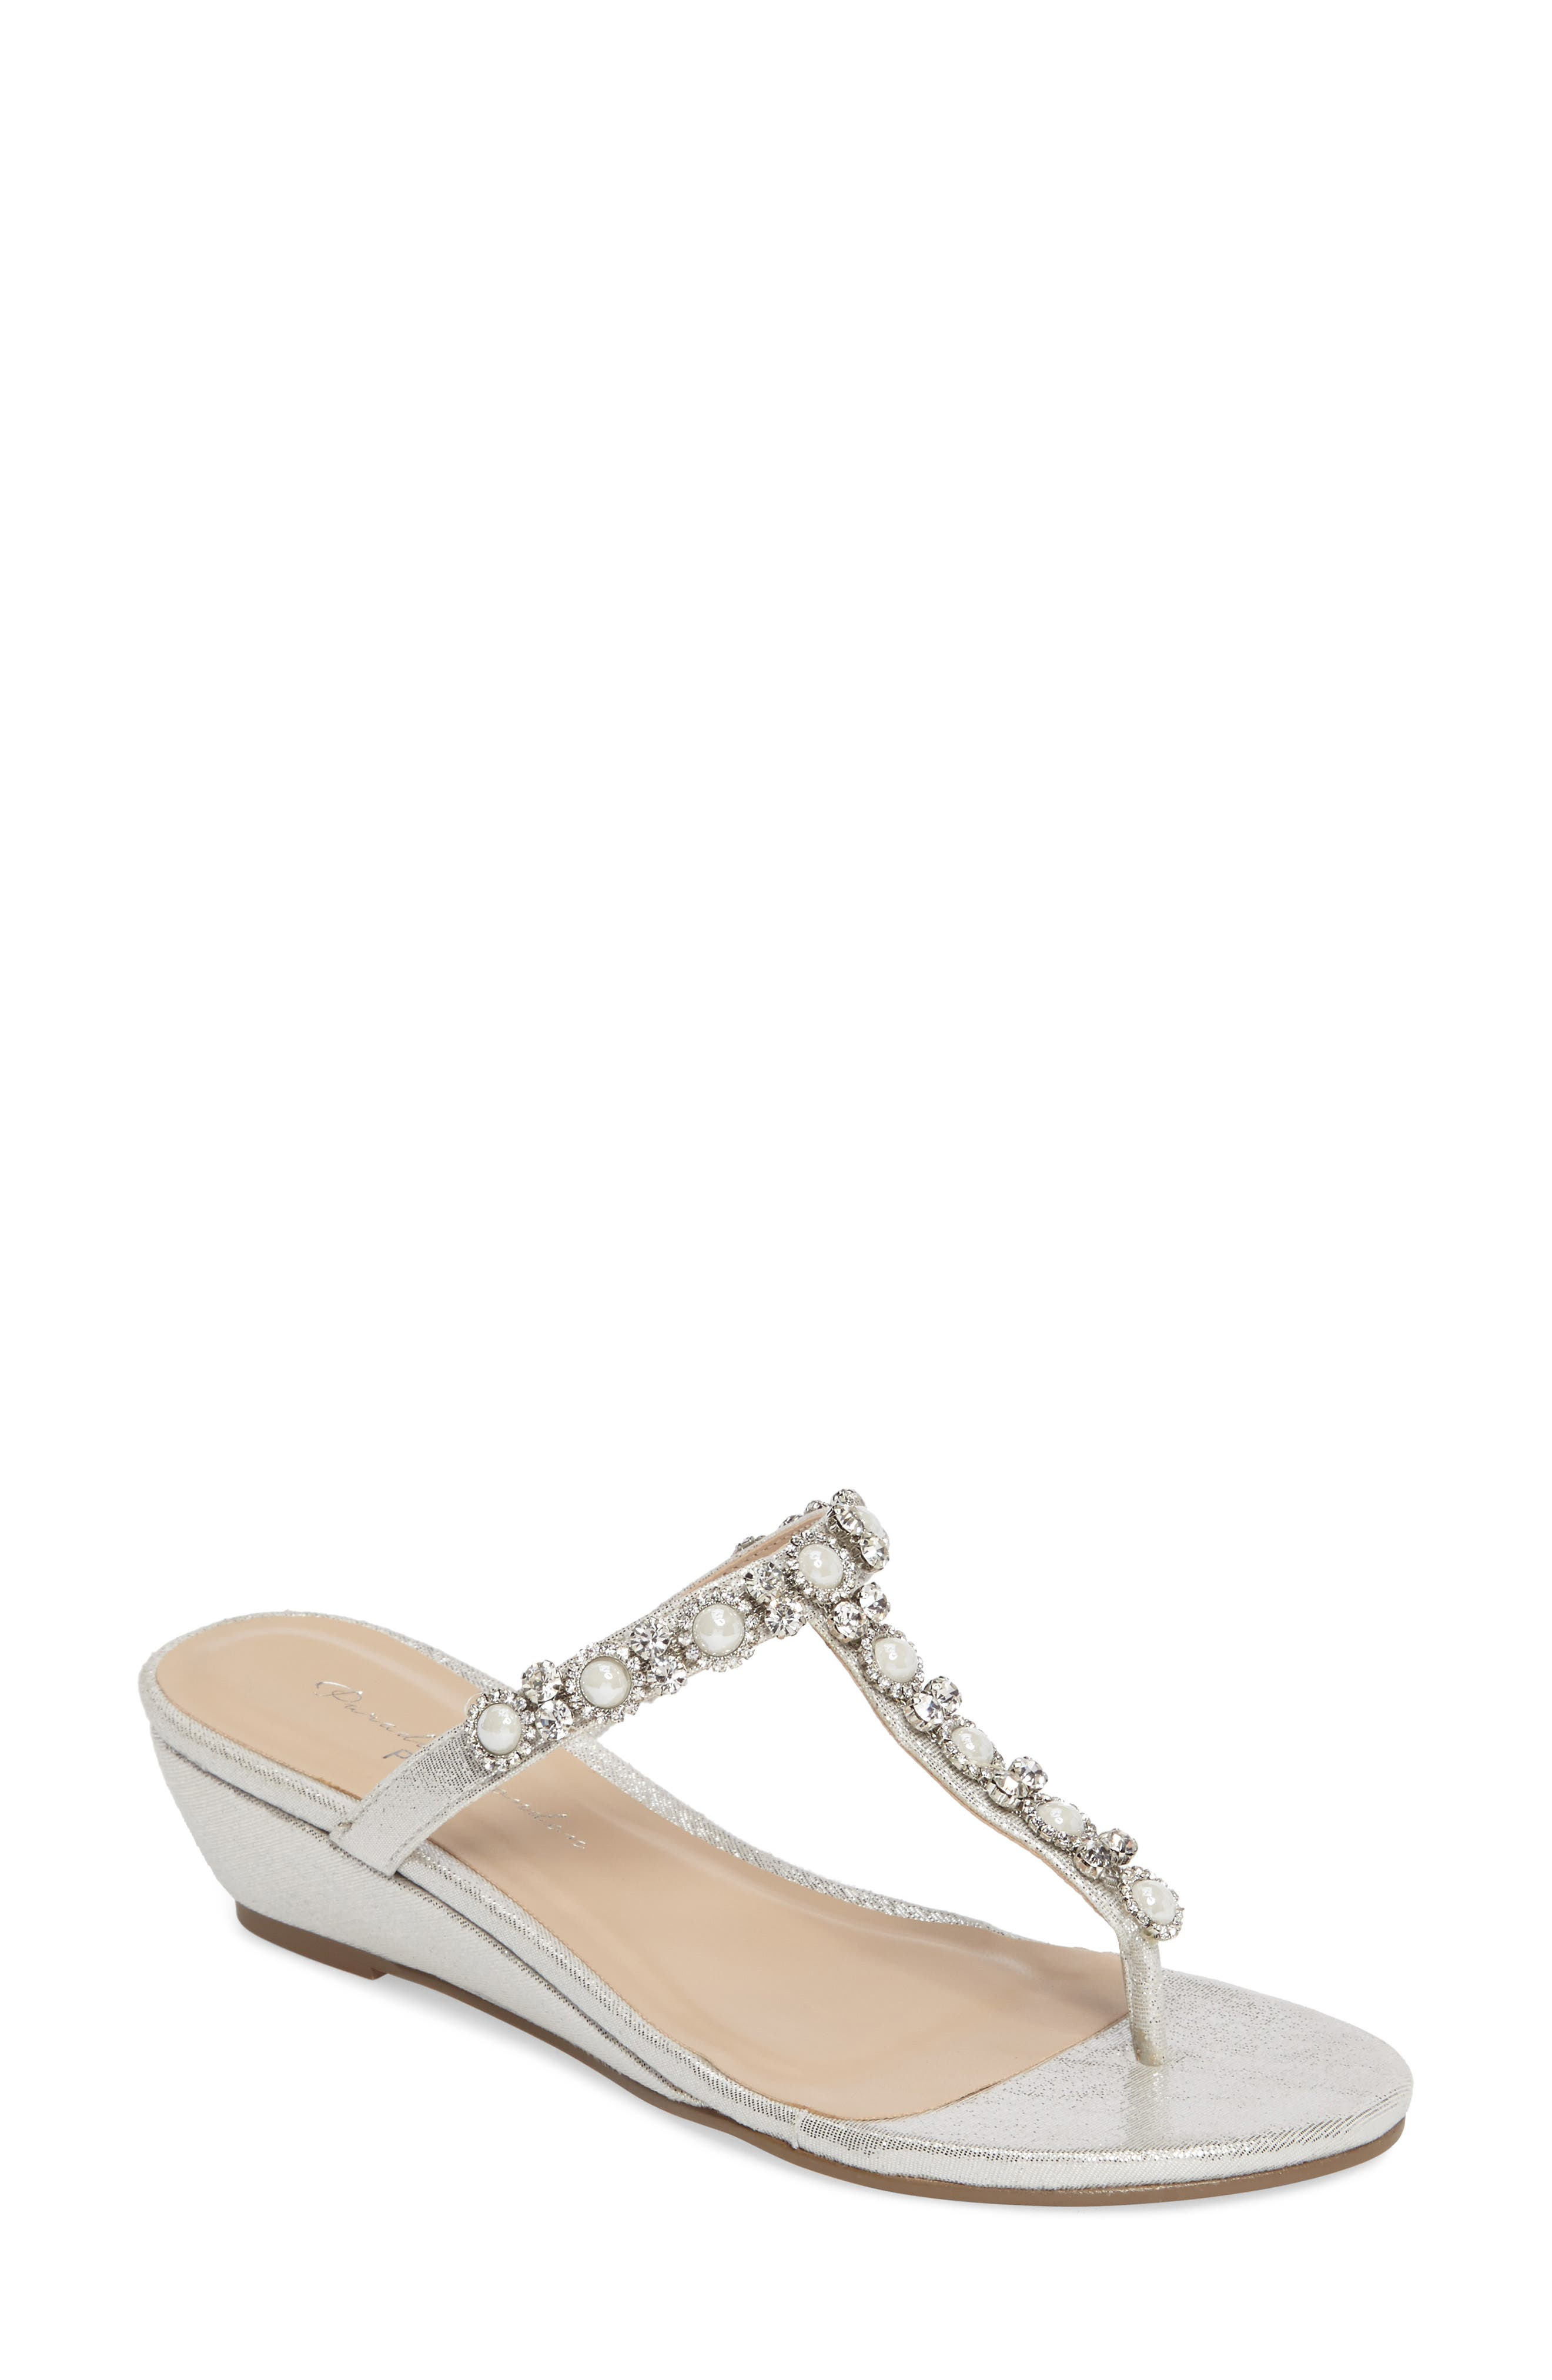 Marnie Embellished T-Strap Wedge,                             Main thumbnail 1, color,                             SILVER